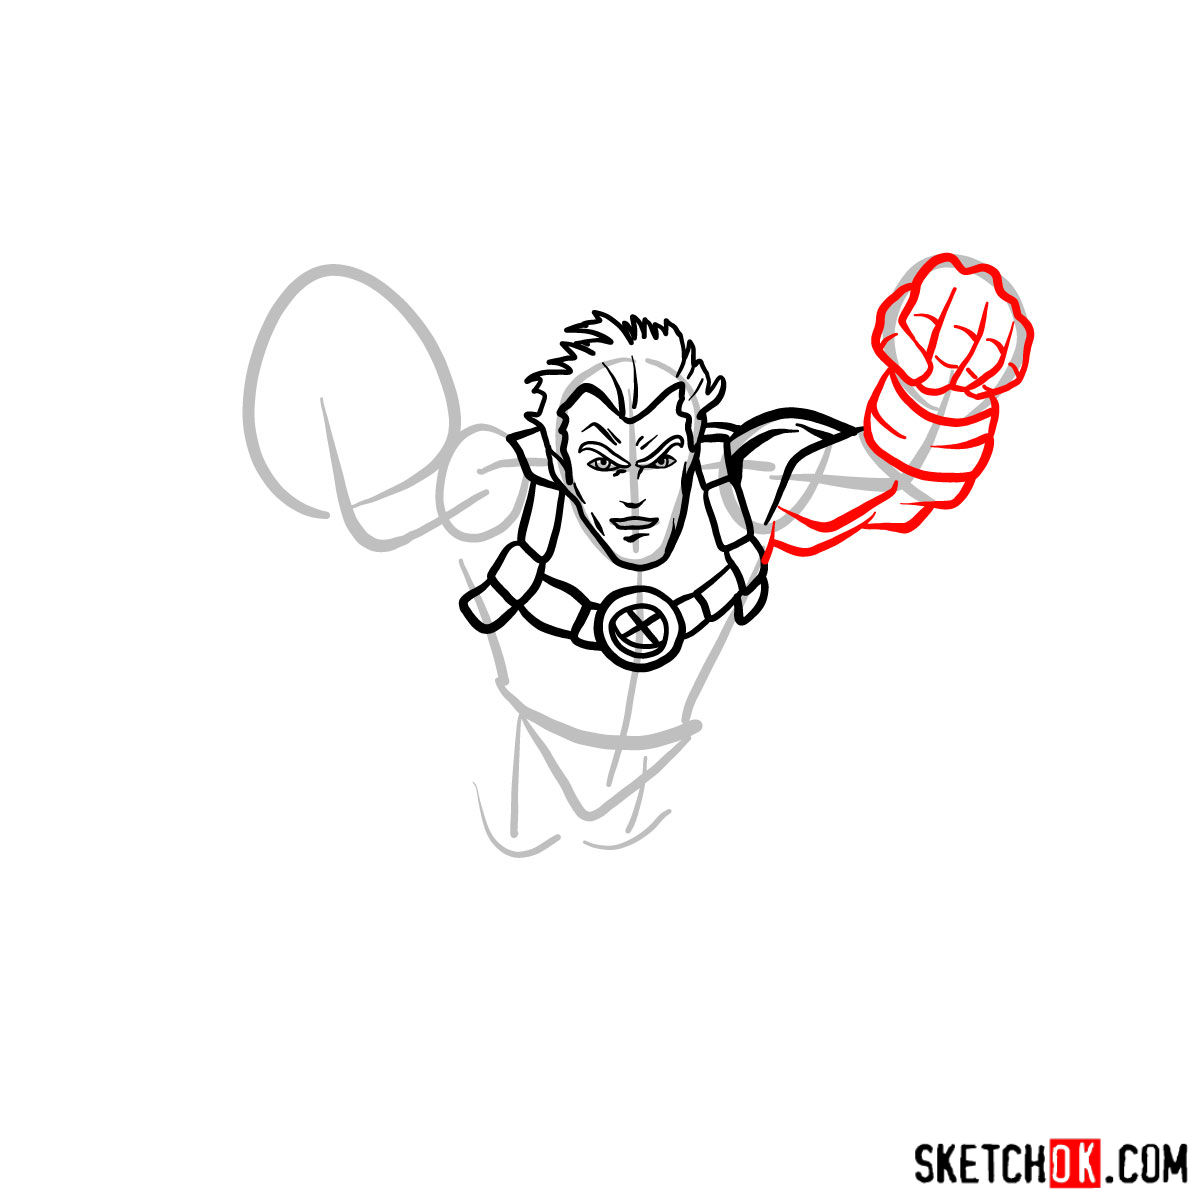 How to draw Cannonball, a mutant from X-Men series - step 05